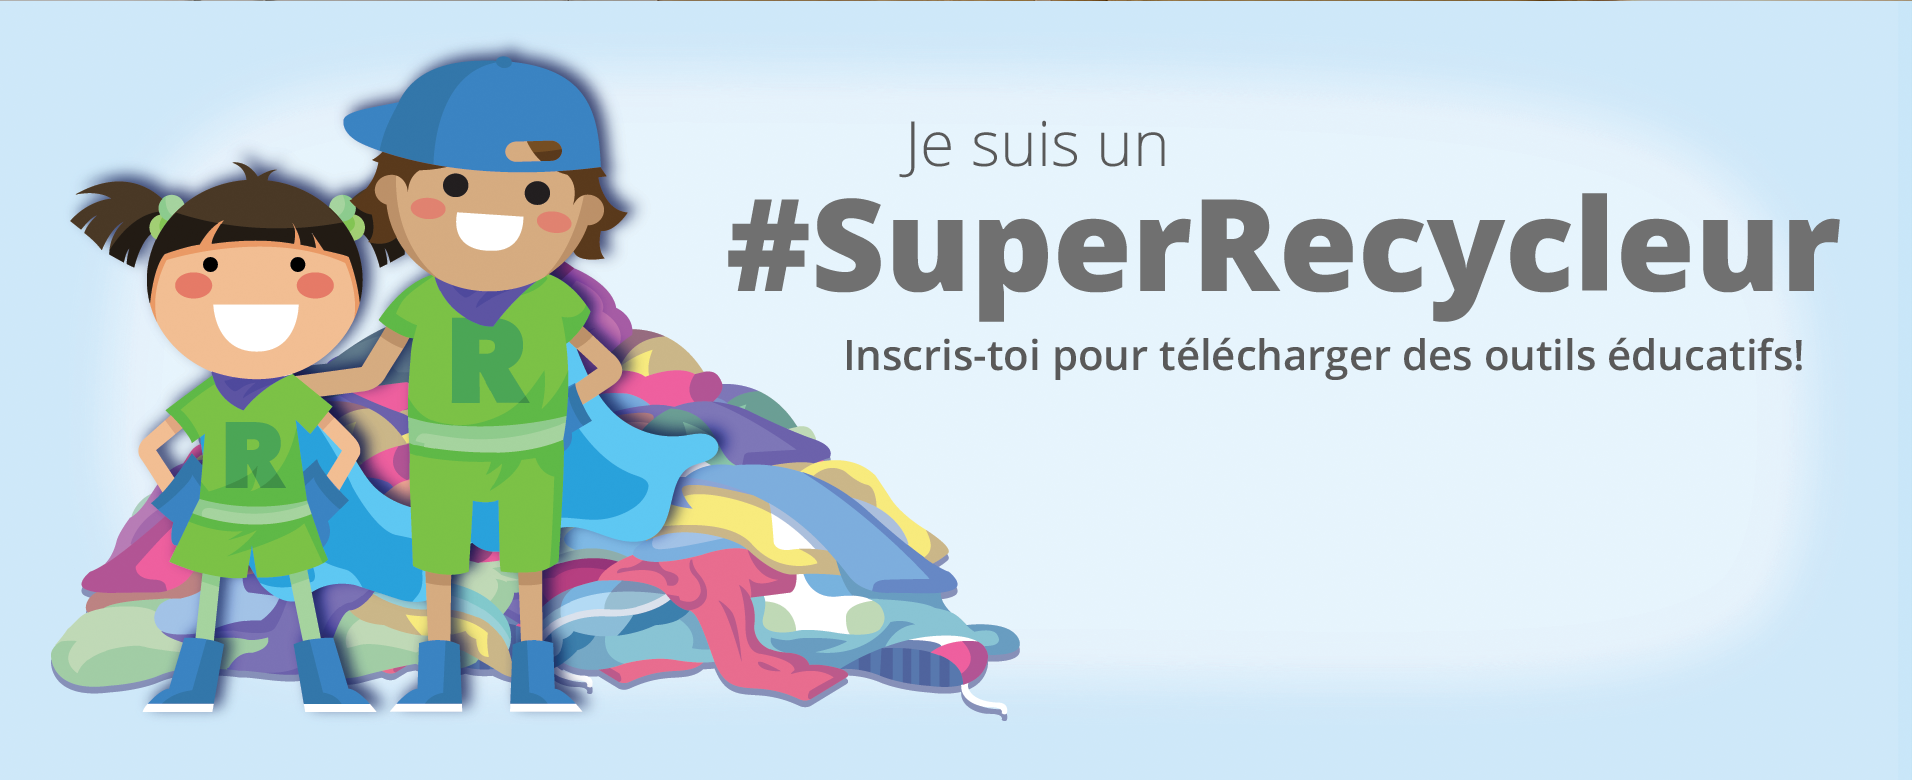 1 Super Recycleurs HERO jesuisunSR 1